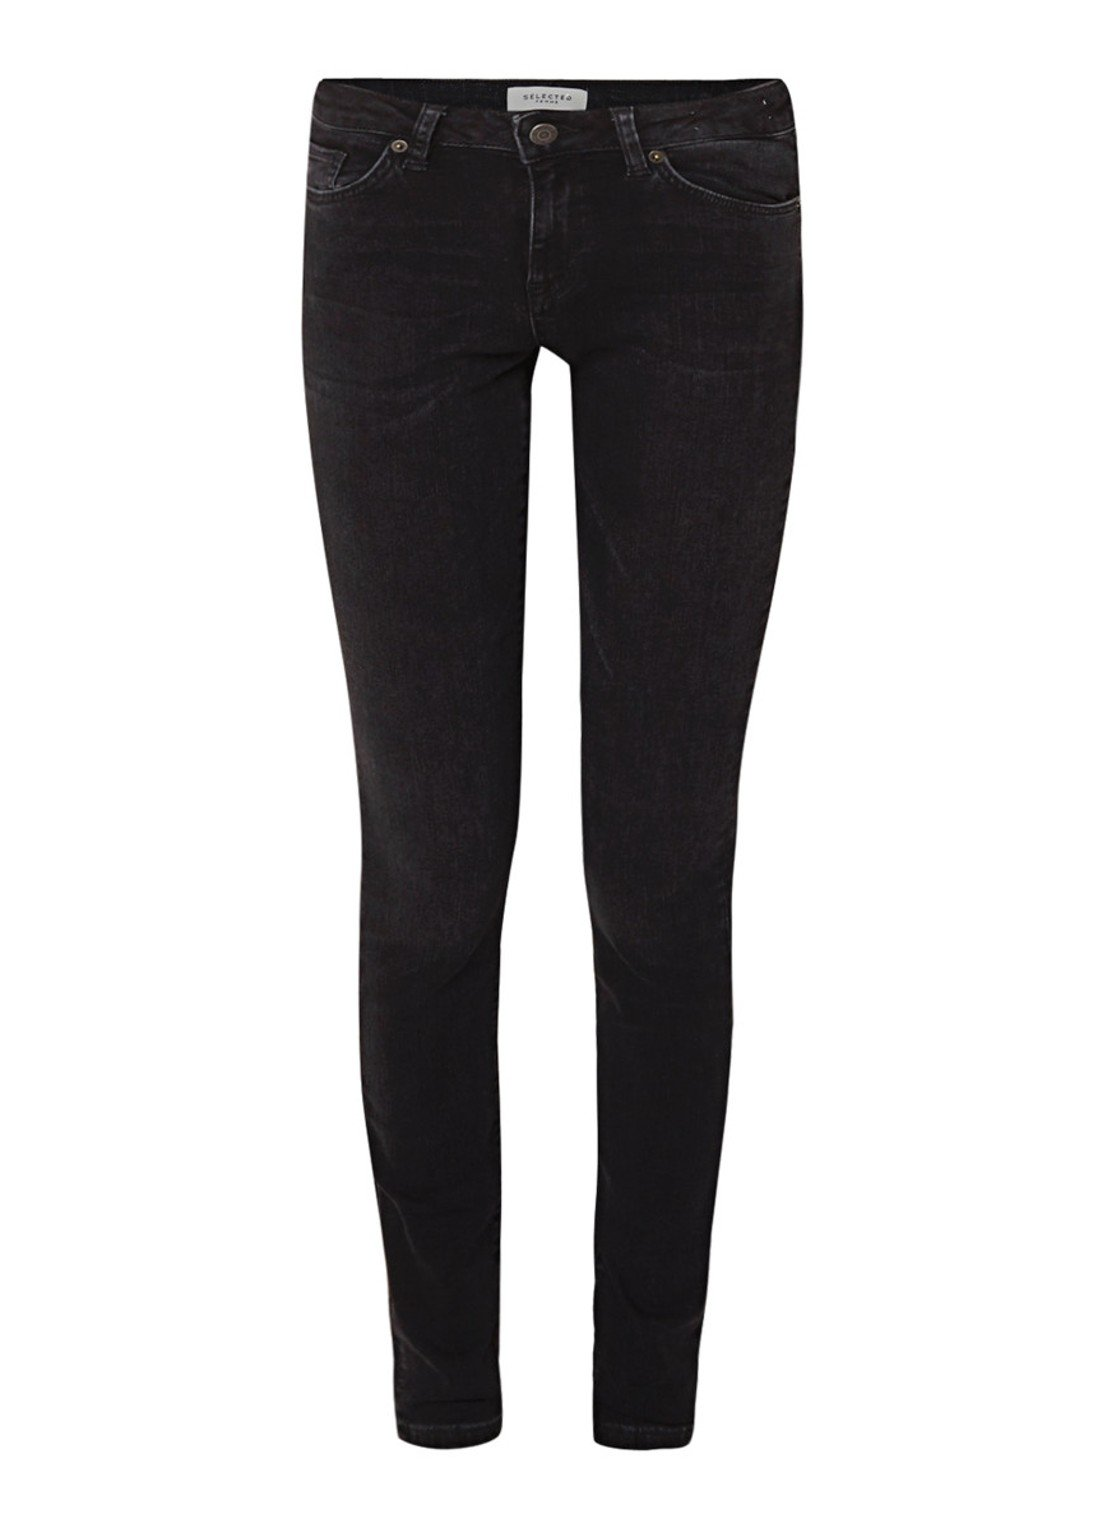 Selected Femme Fida mid waist skinny fit jeans made of organic cotton